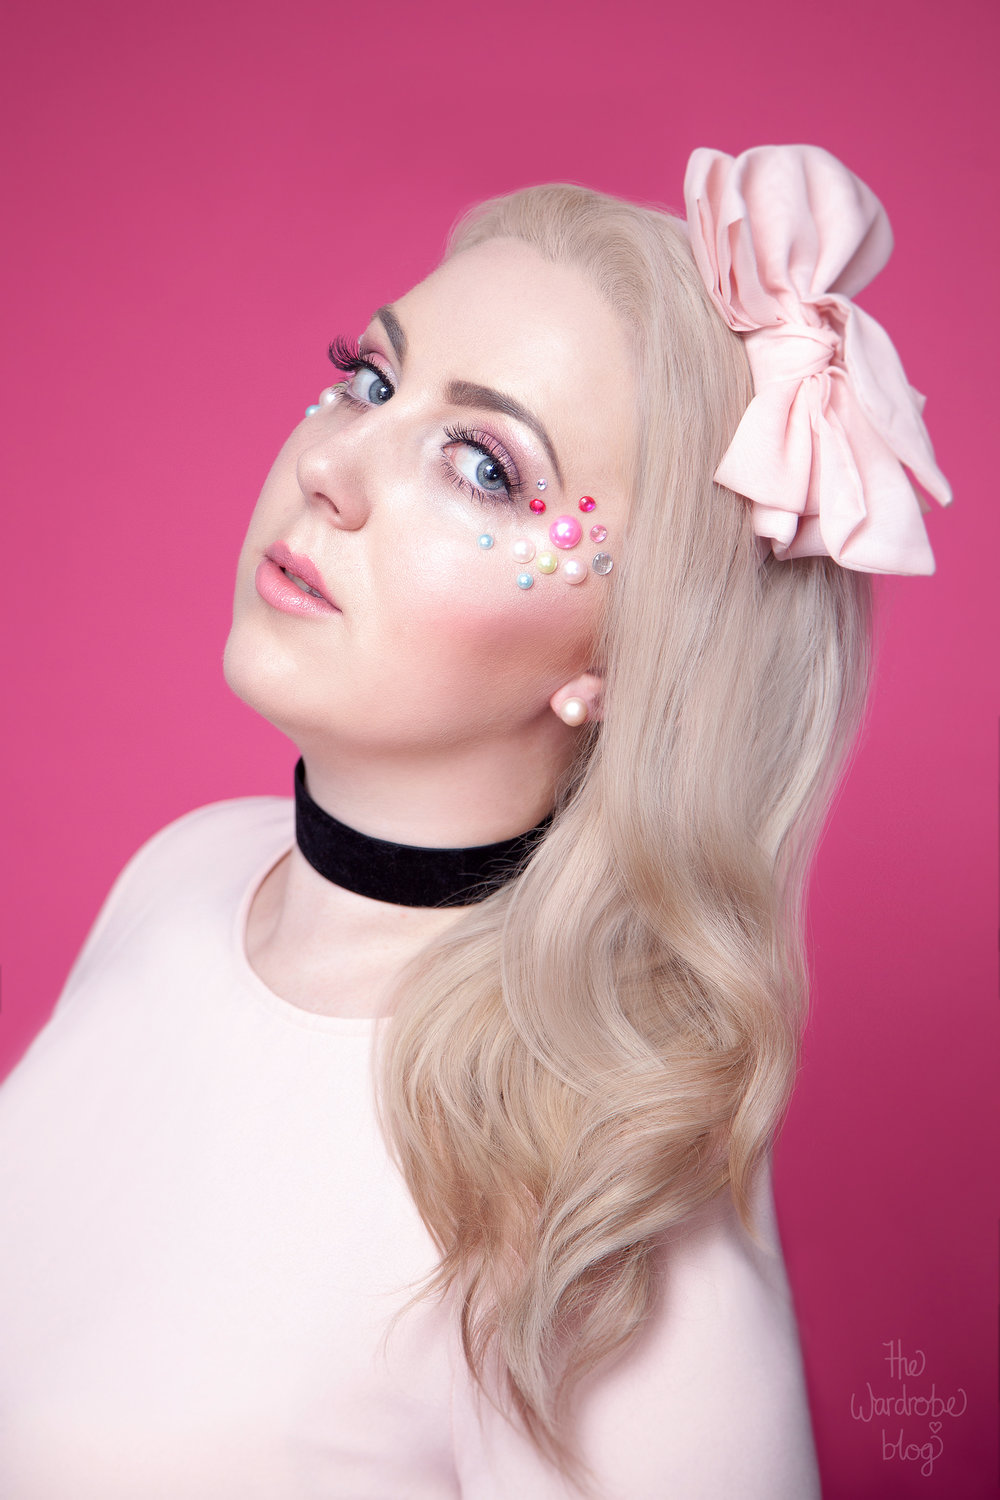 Icecream-Makeup-Editorial-Studio-Pastel